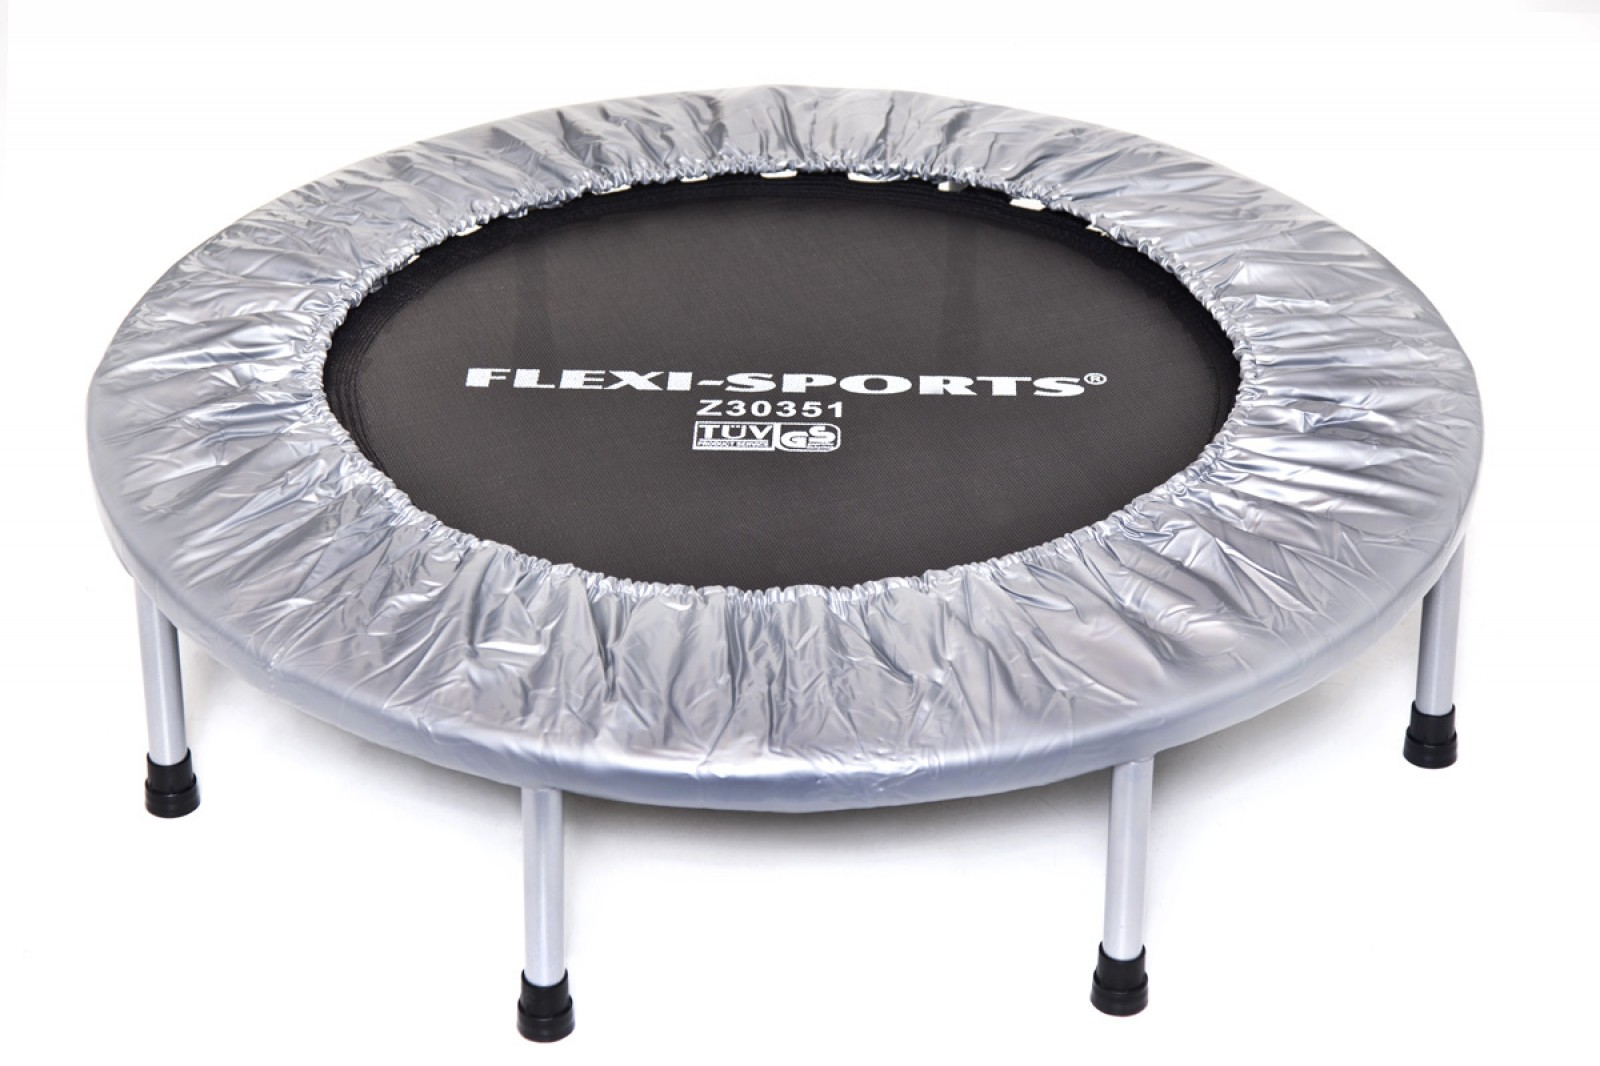 flexi sports fitness trampolin g nstig kaufen sport tiedje. Black Bedroom Furniture Sets. Home Design Ideas